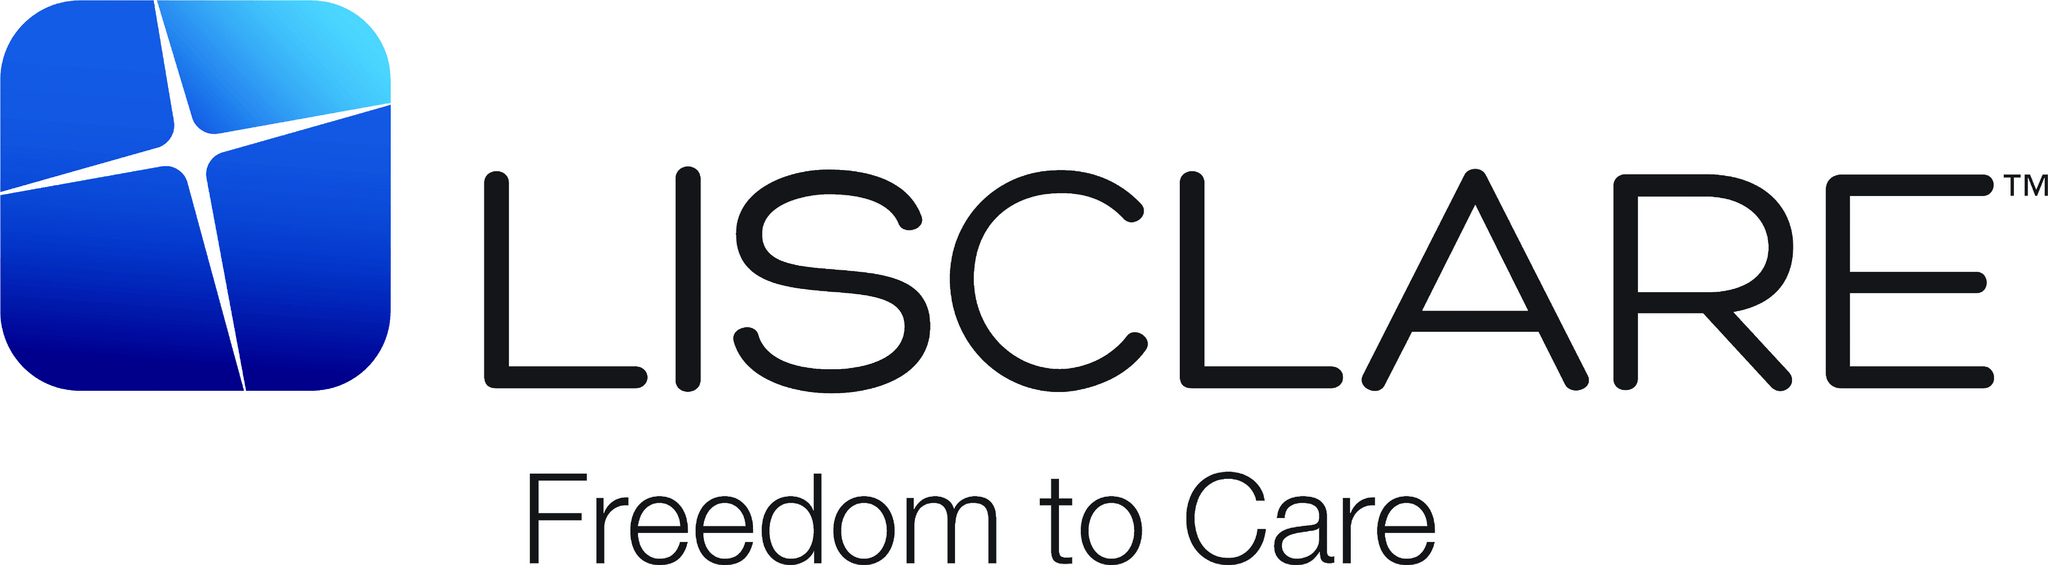 Lisclare Ltd